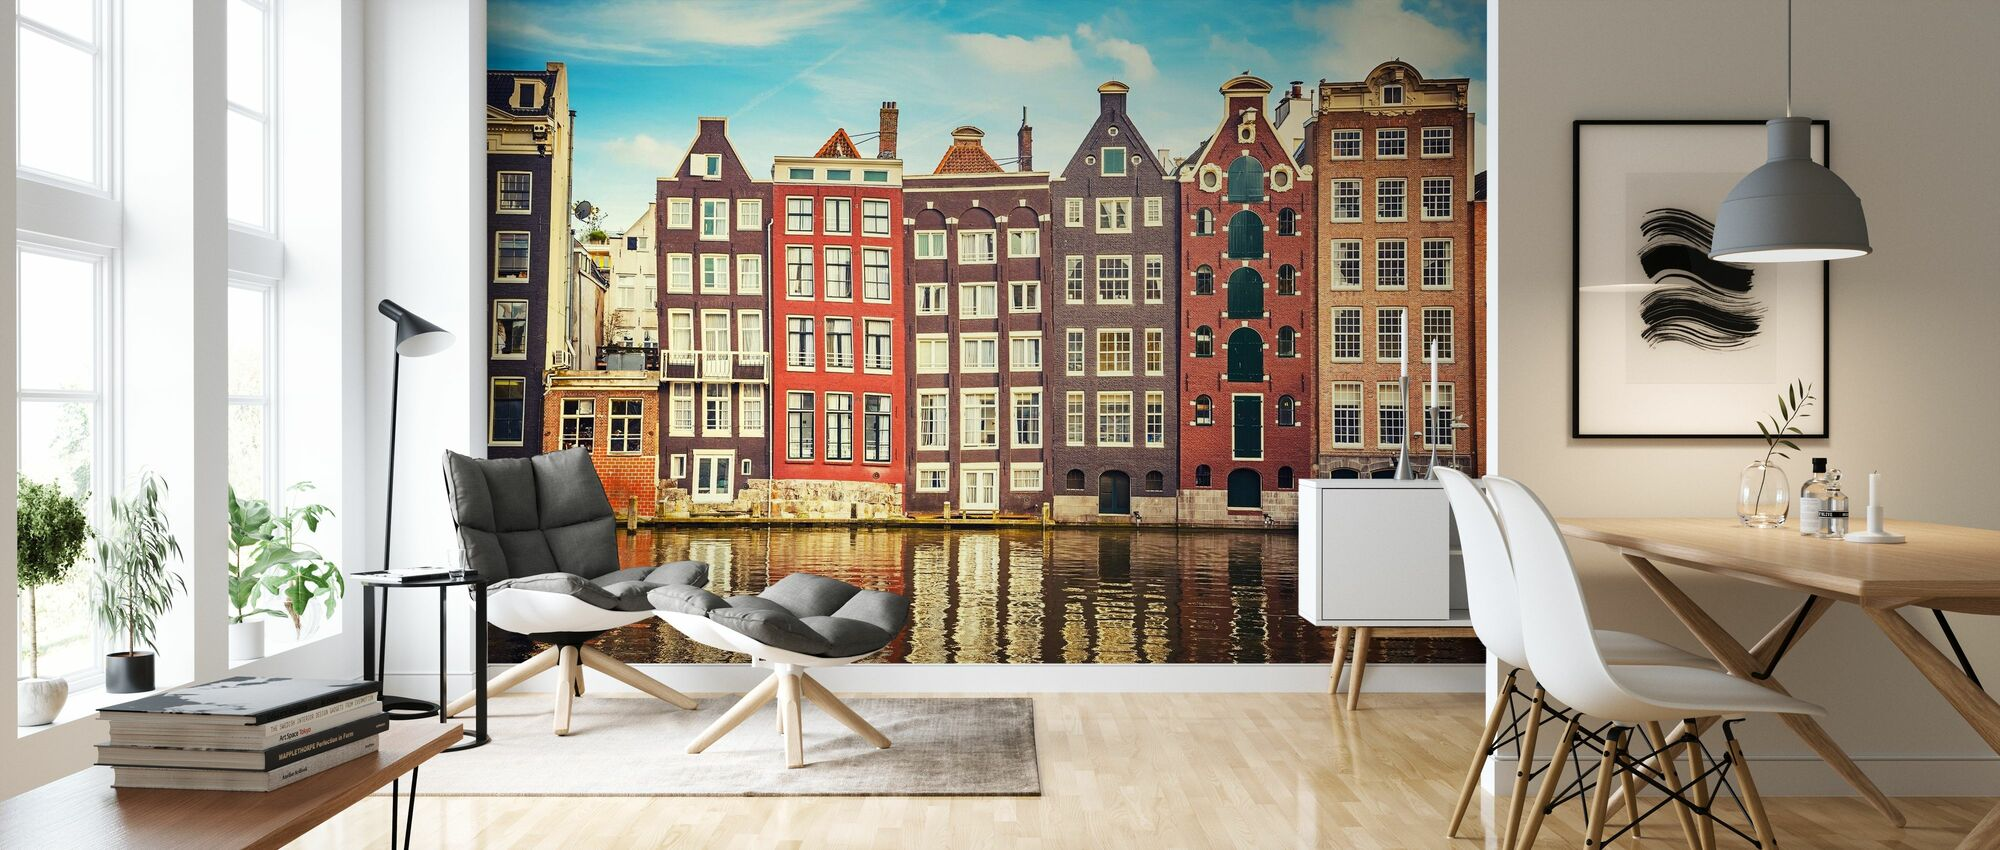 Amsterdam Houses with Water - Wallpaper - Living Room